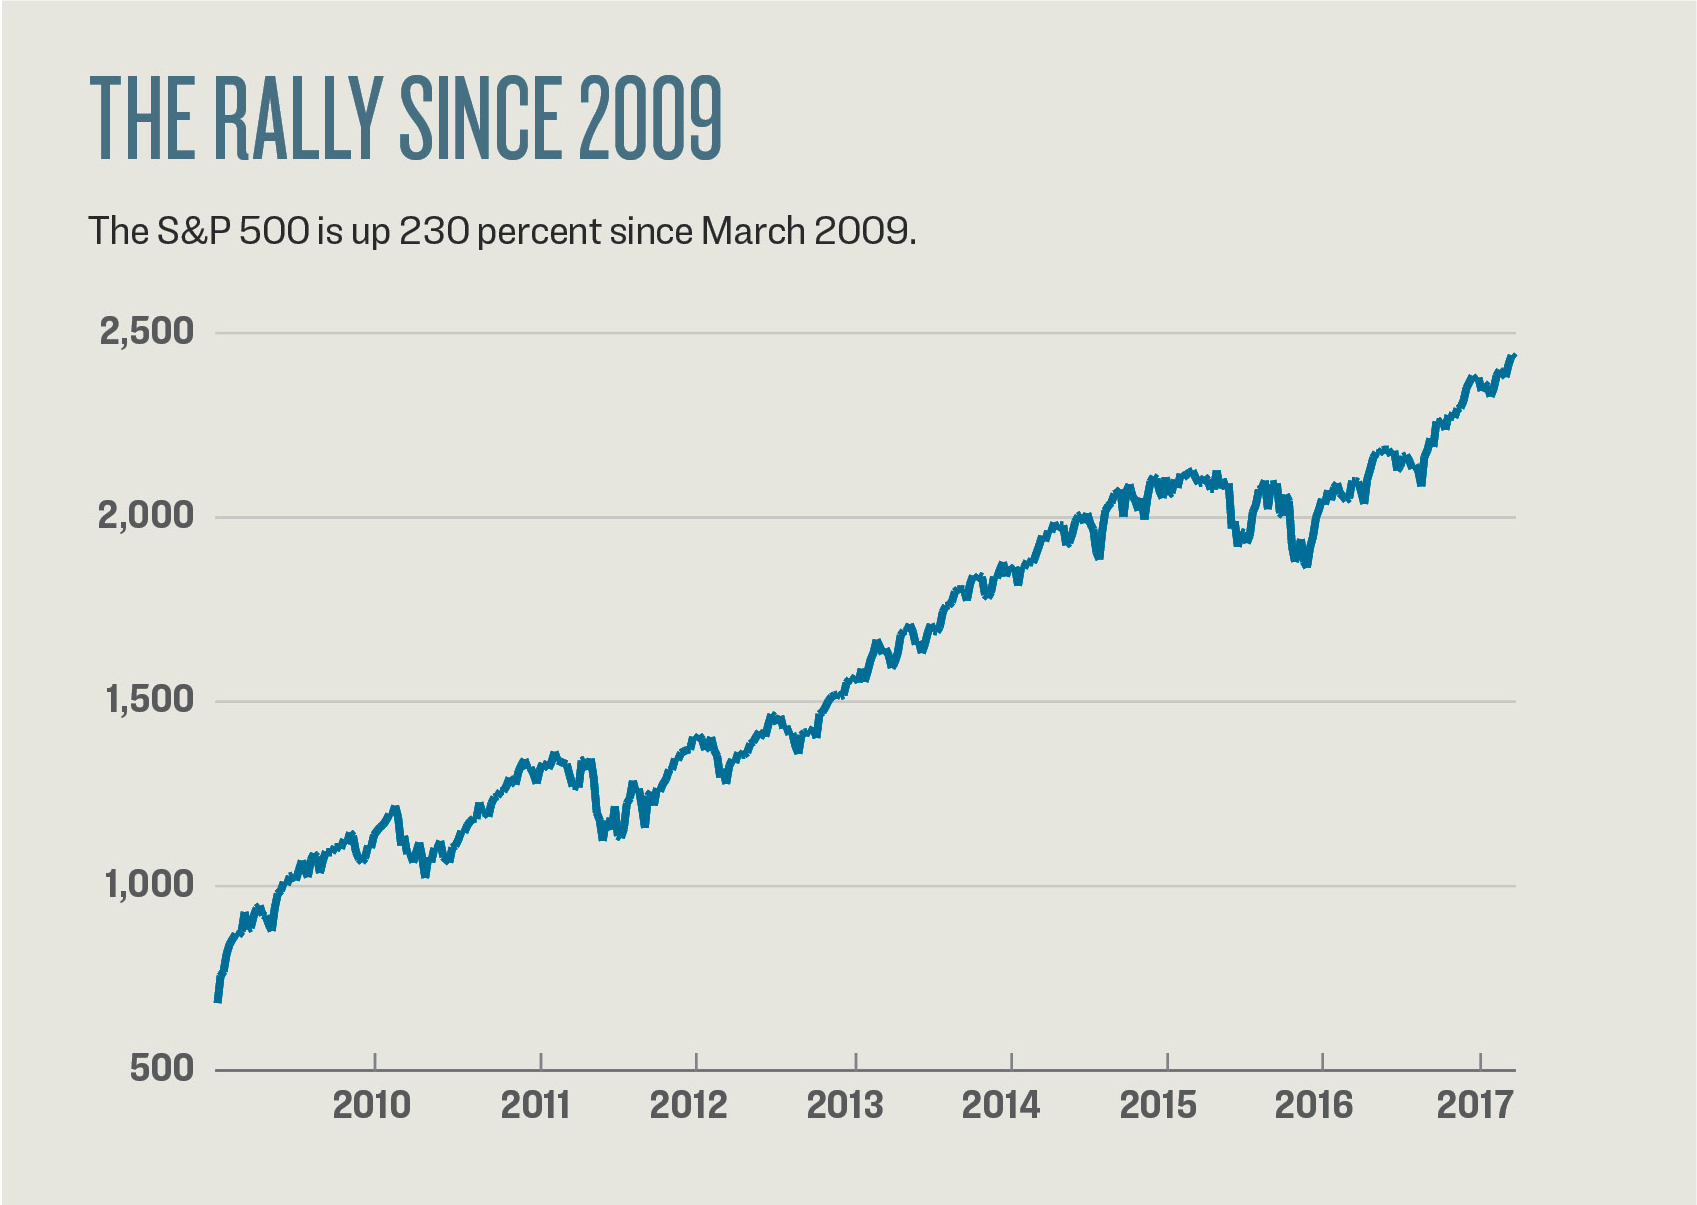 The S&P 500 is up 230 percent since the low on March 6, 2009. This bull market is now 99 months old, taking second place after the tech boom of the 1990s, which lasted 113 months from October 1990 to March 2000 and delivered gains of 417 percent.